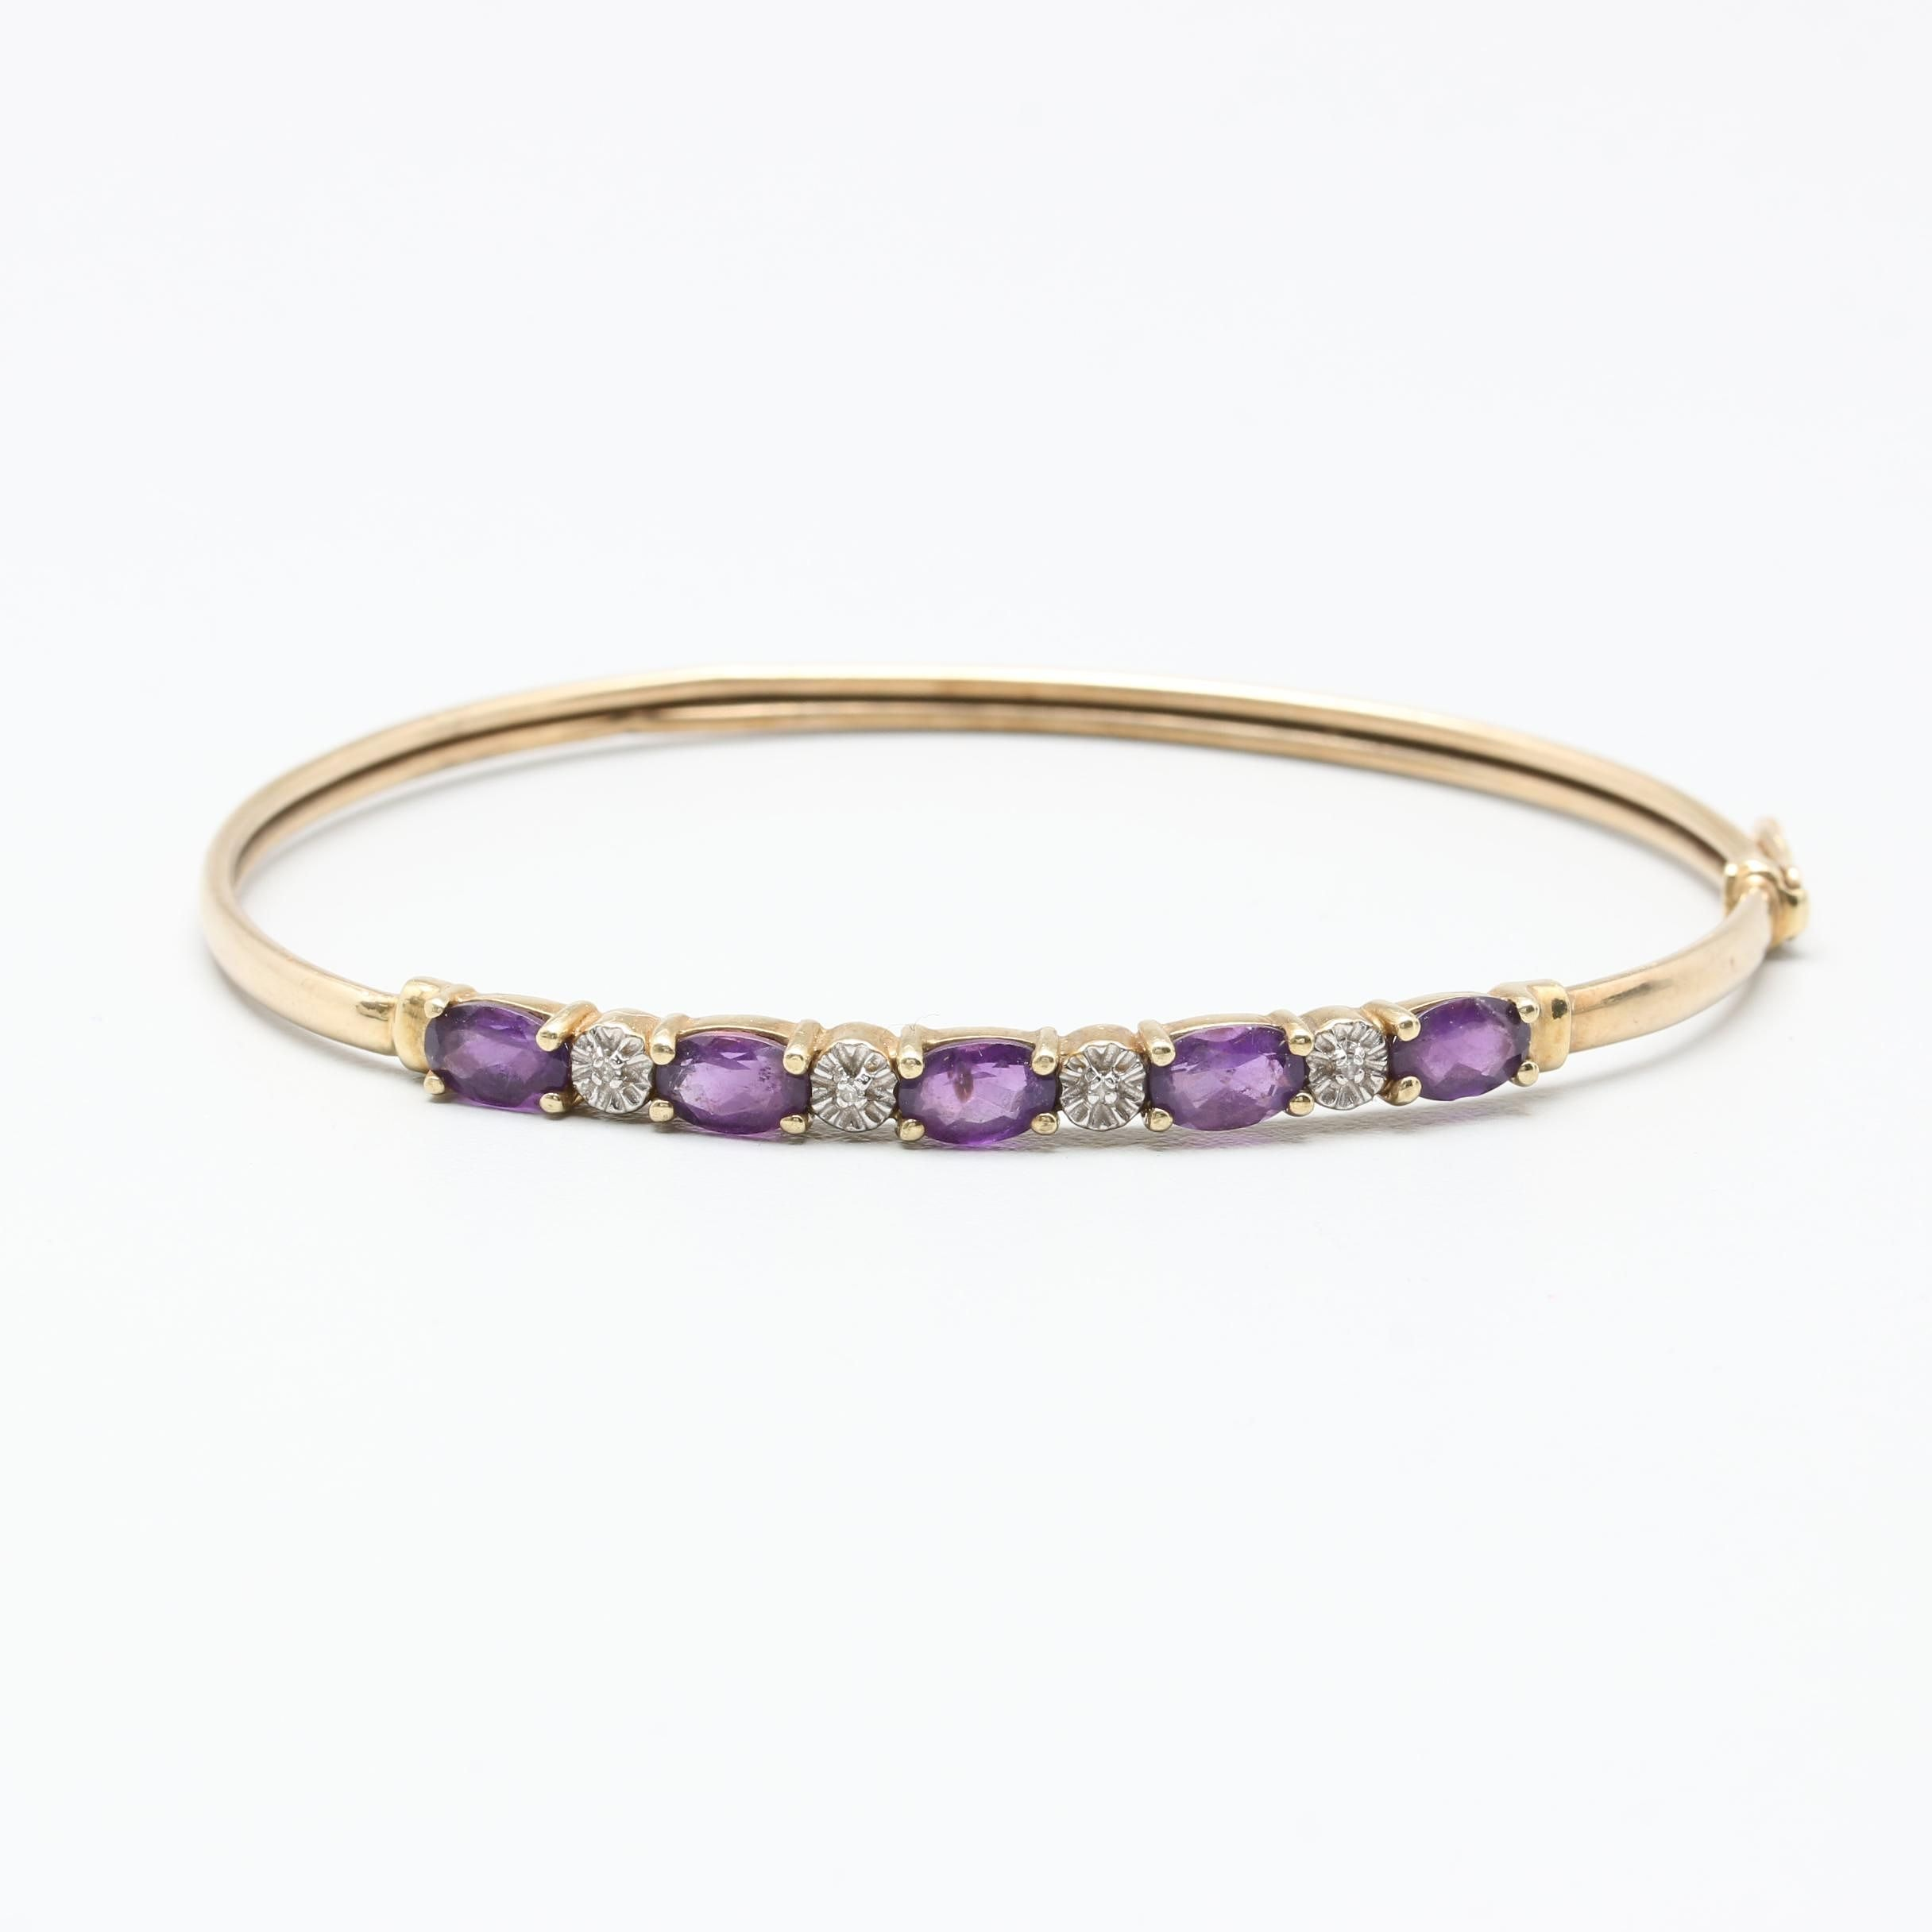 10K Yellow Gold Amethyst and Diamond Bracelet